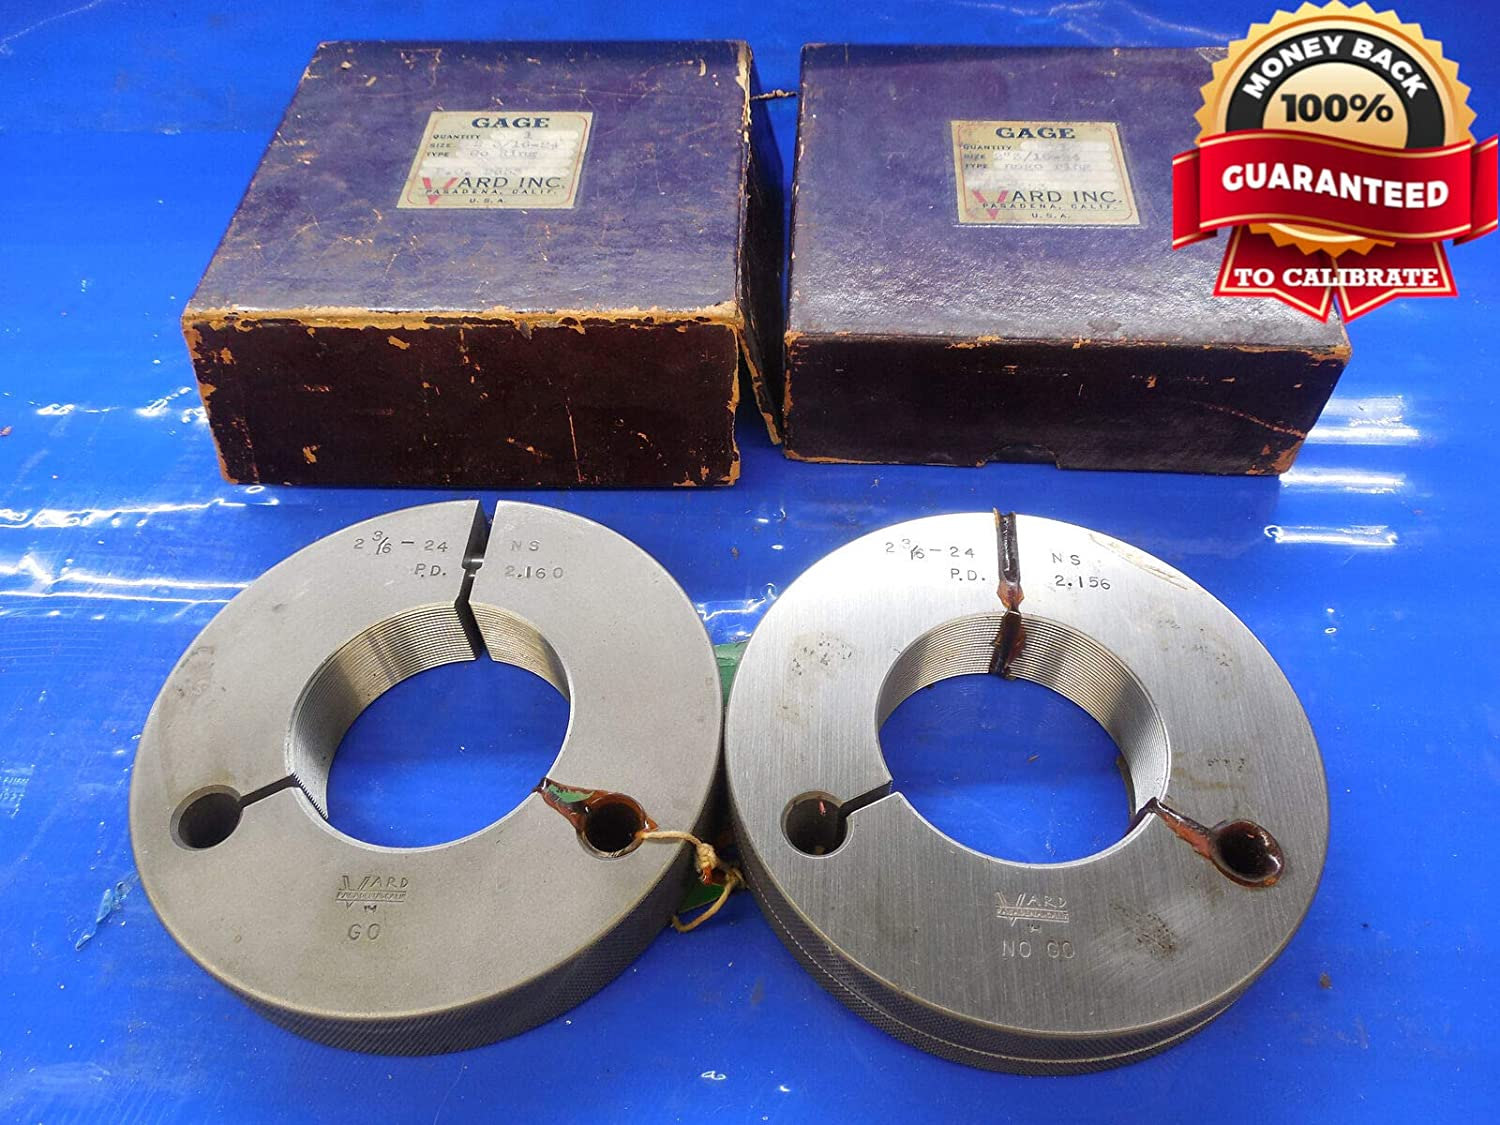 New 2 3/16 24 NS Thread Ring GAGES 2.1875 GO NO GO P.D.'S = 2.1600 & 2.1560